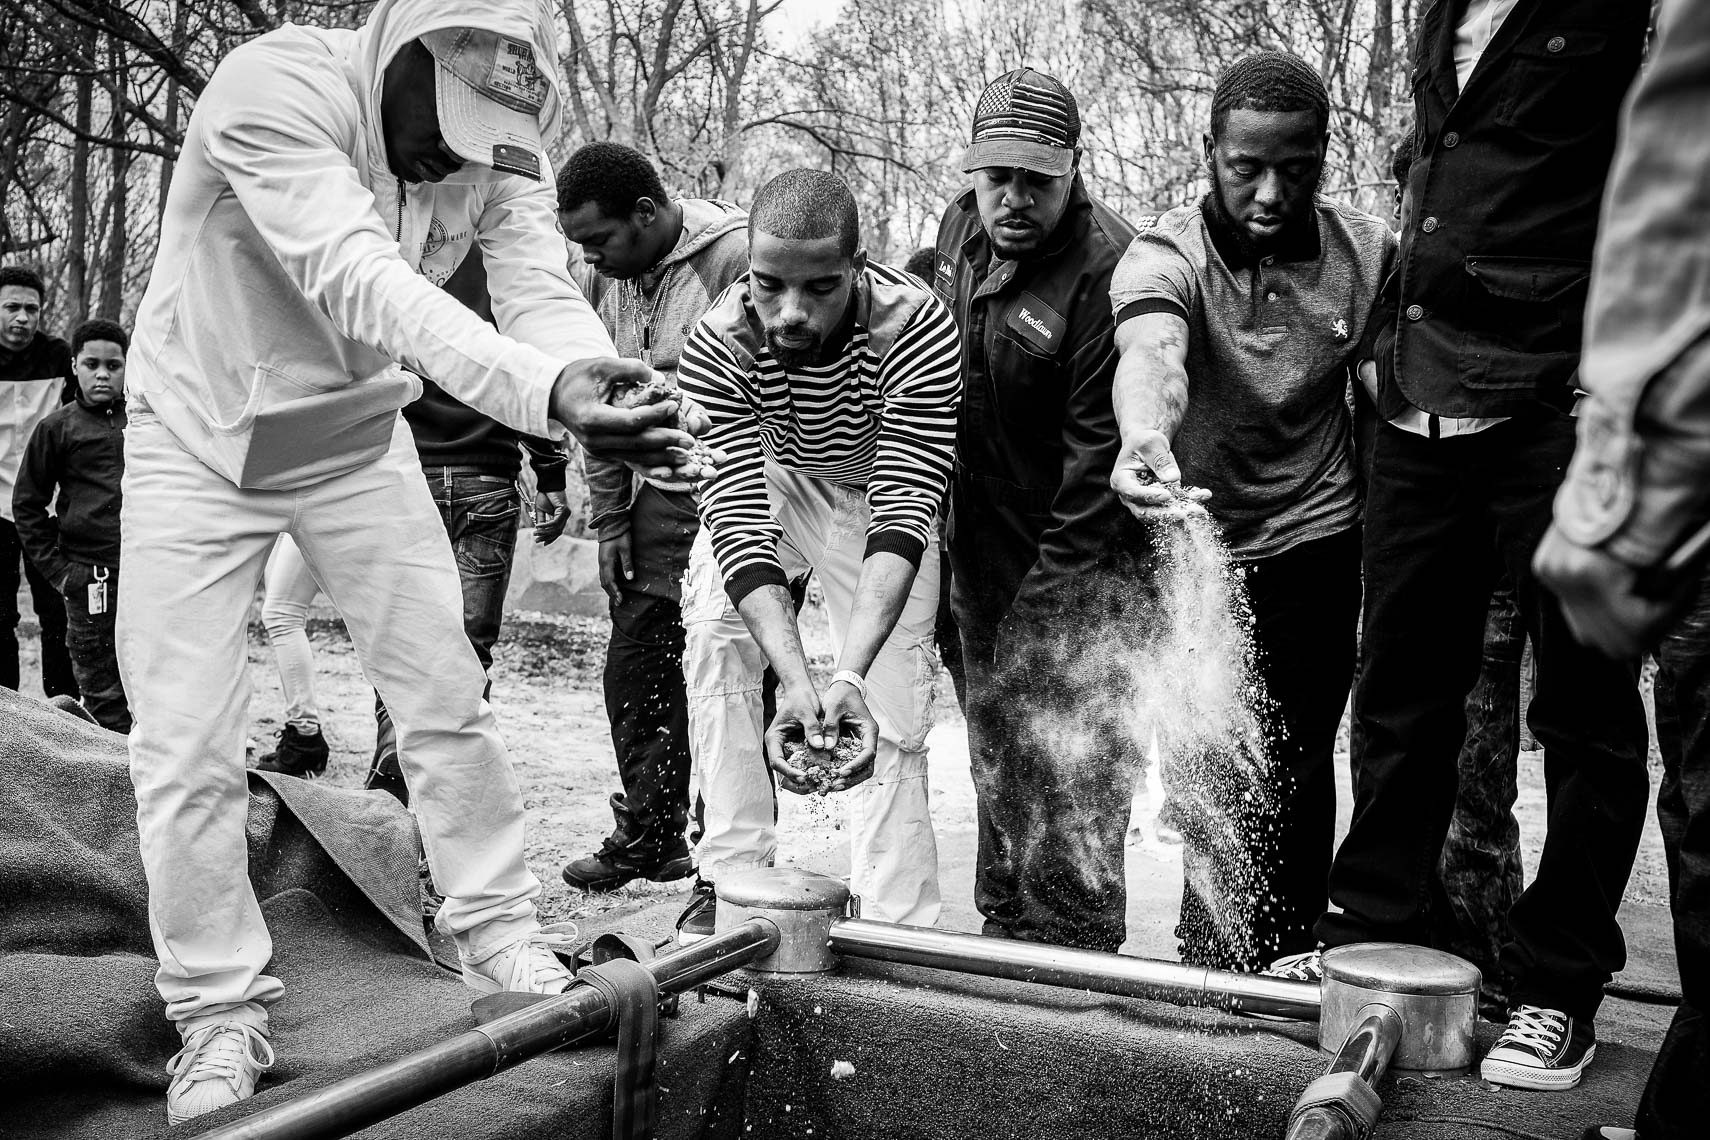 Baltimore Uprising photography by baltimore based photojournalist and reportage photographer in baltimore maryland during the baltimore riots after baltimore police death of baltimore youth Freddie Gray